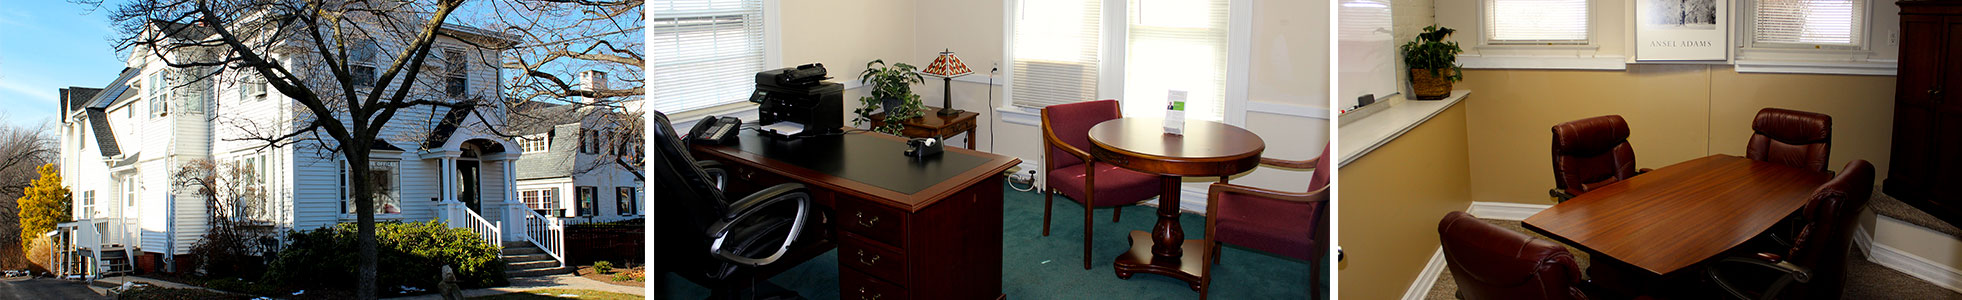 Virtual Office Space in Glastonbury CT